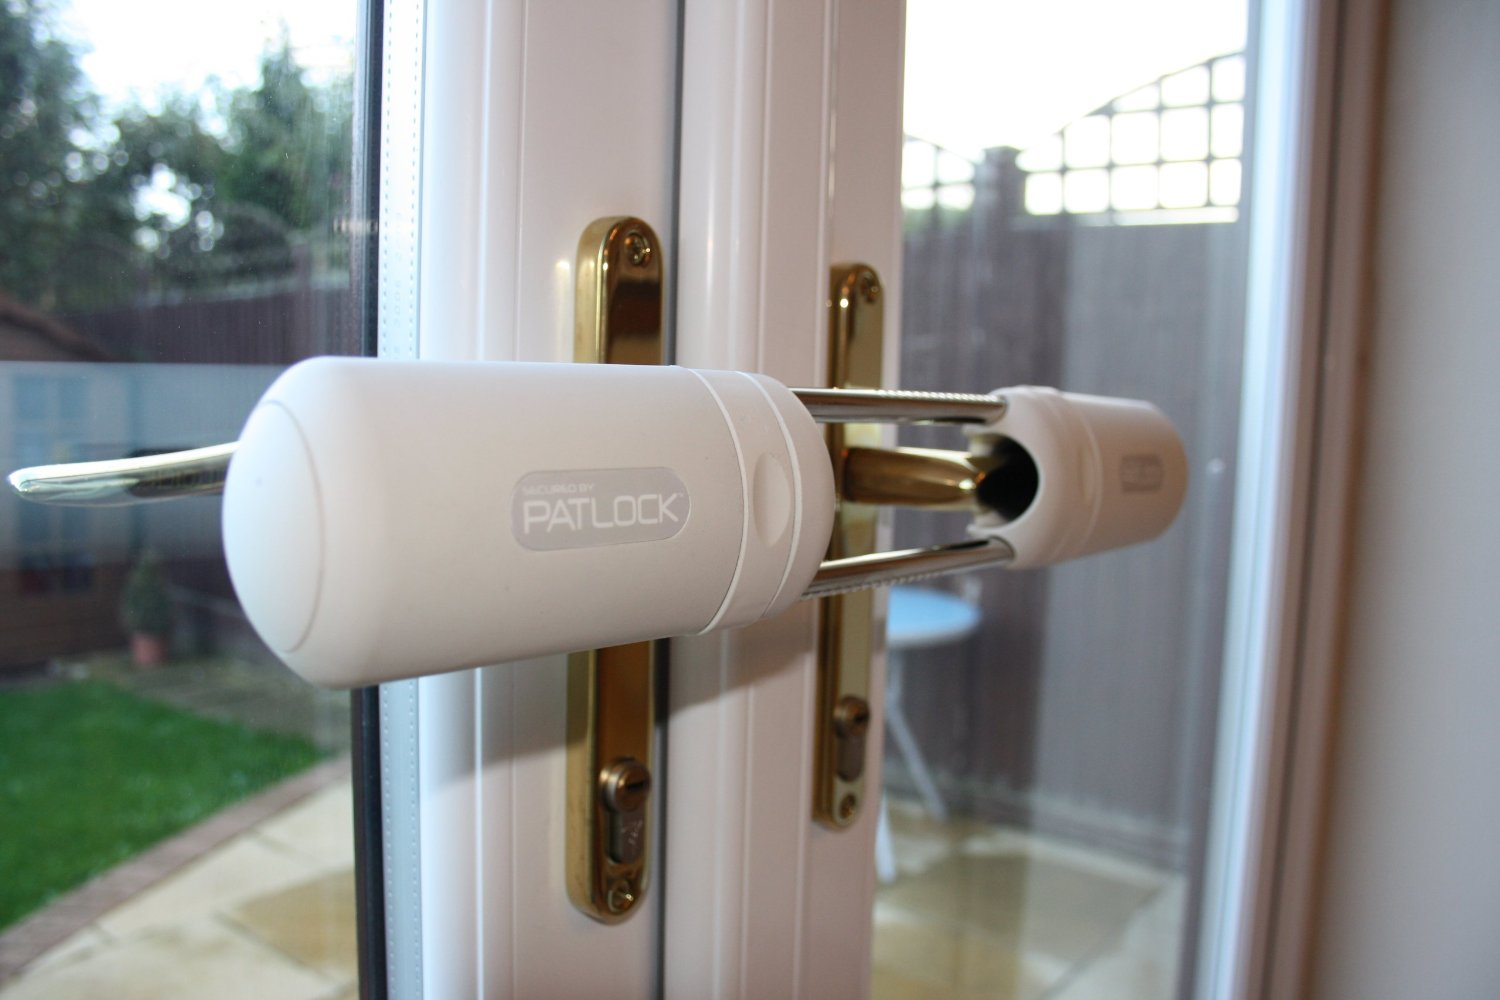 Patlock French Door Patio Security Lock Ireland Dublin